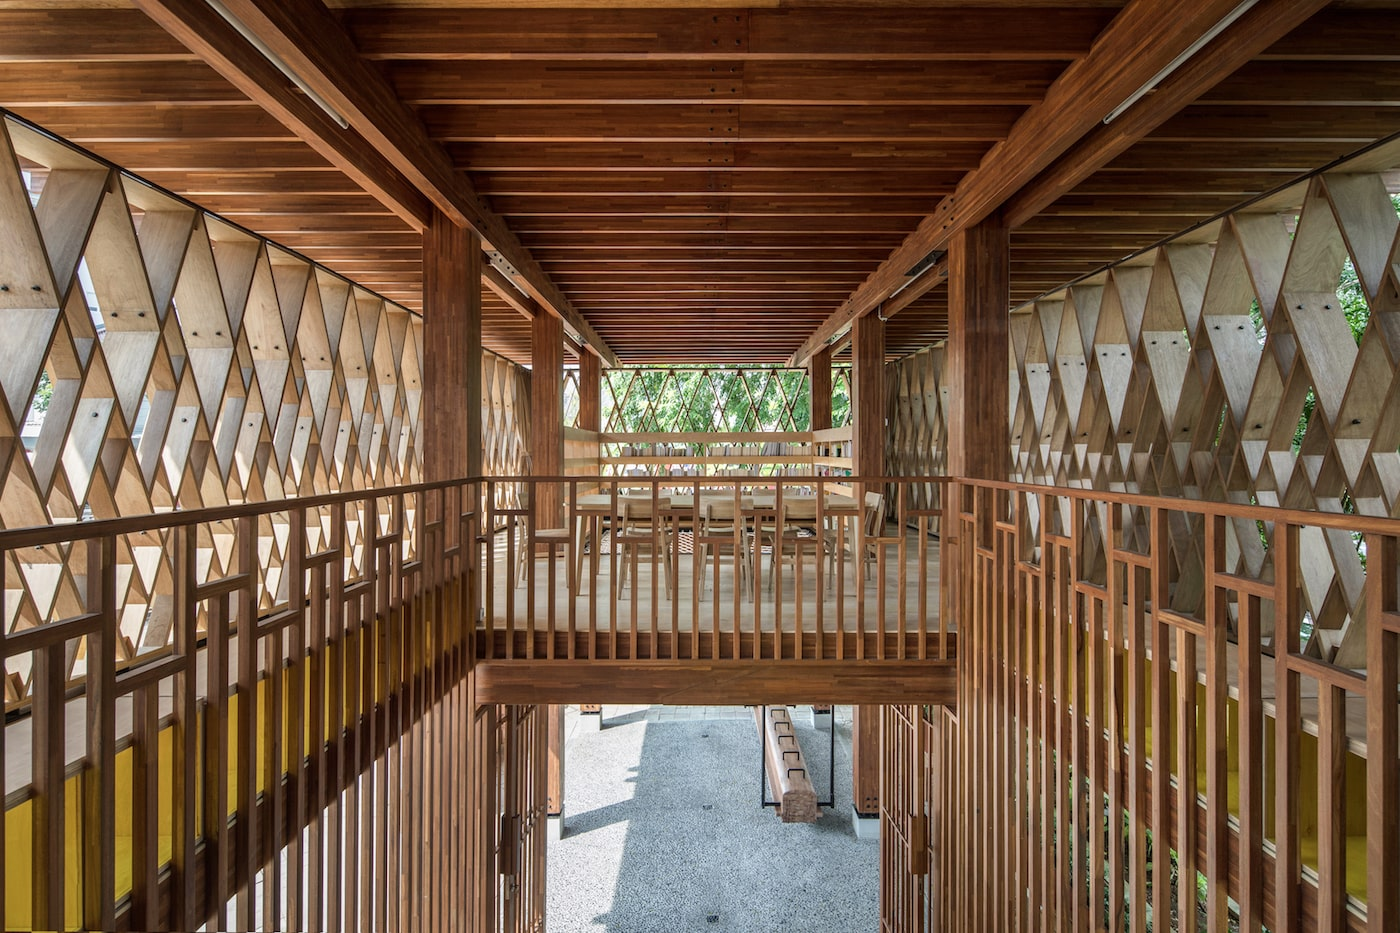 Timber walkway in timber building